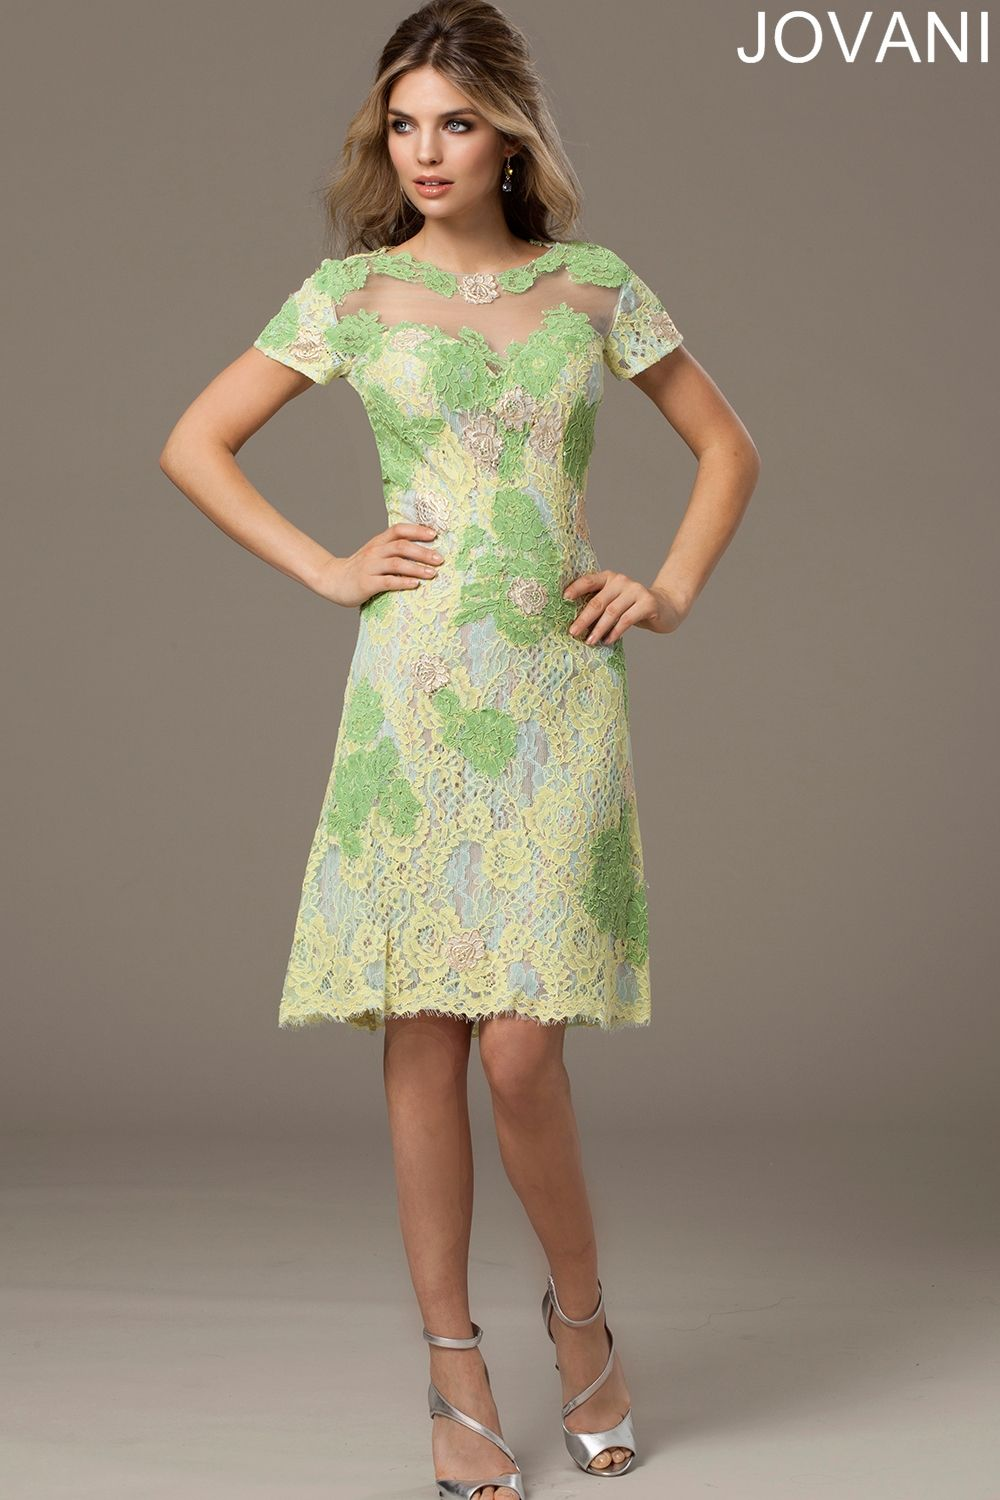 Multicolor floral lace adds a spring like air to the breezy cocktail